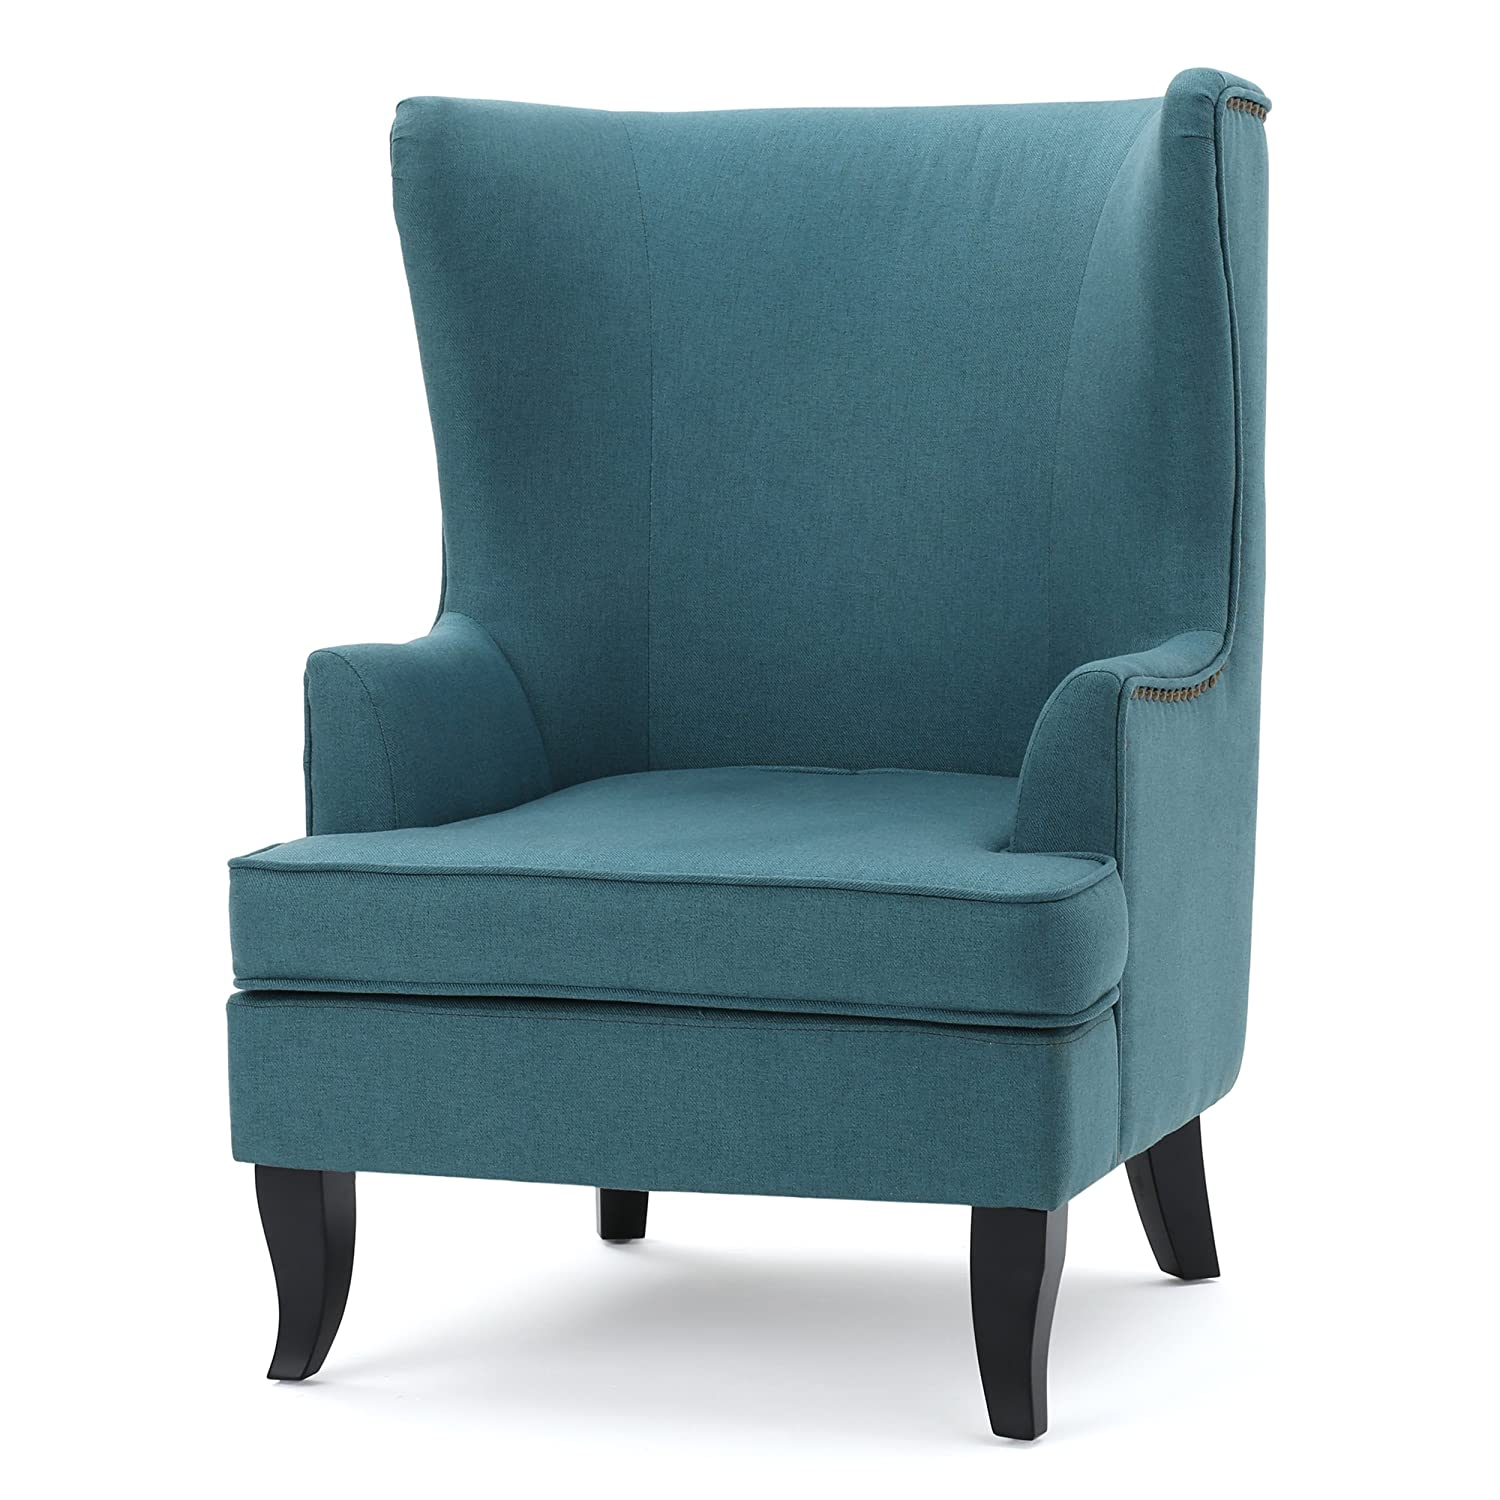 Teal Chair Amazoncom Jameson Tall Wingback Teal Blue Leather Club Chair